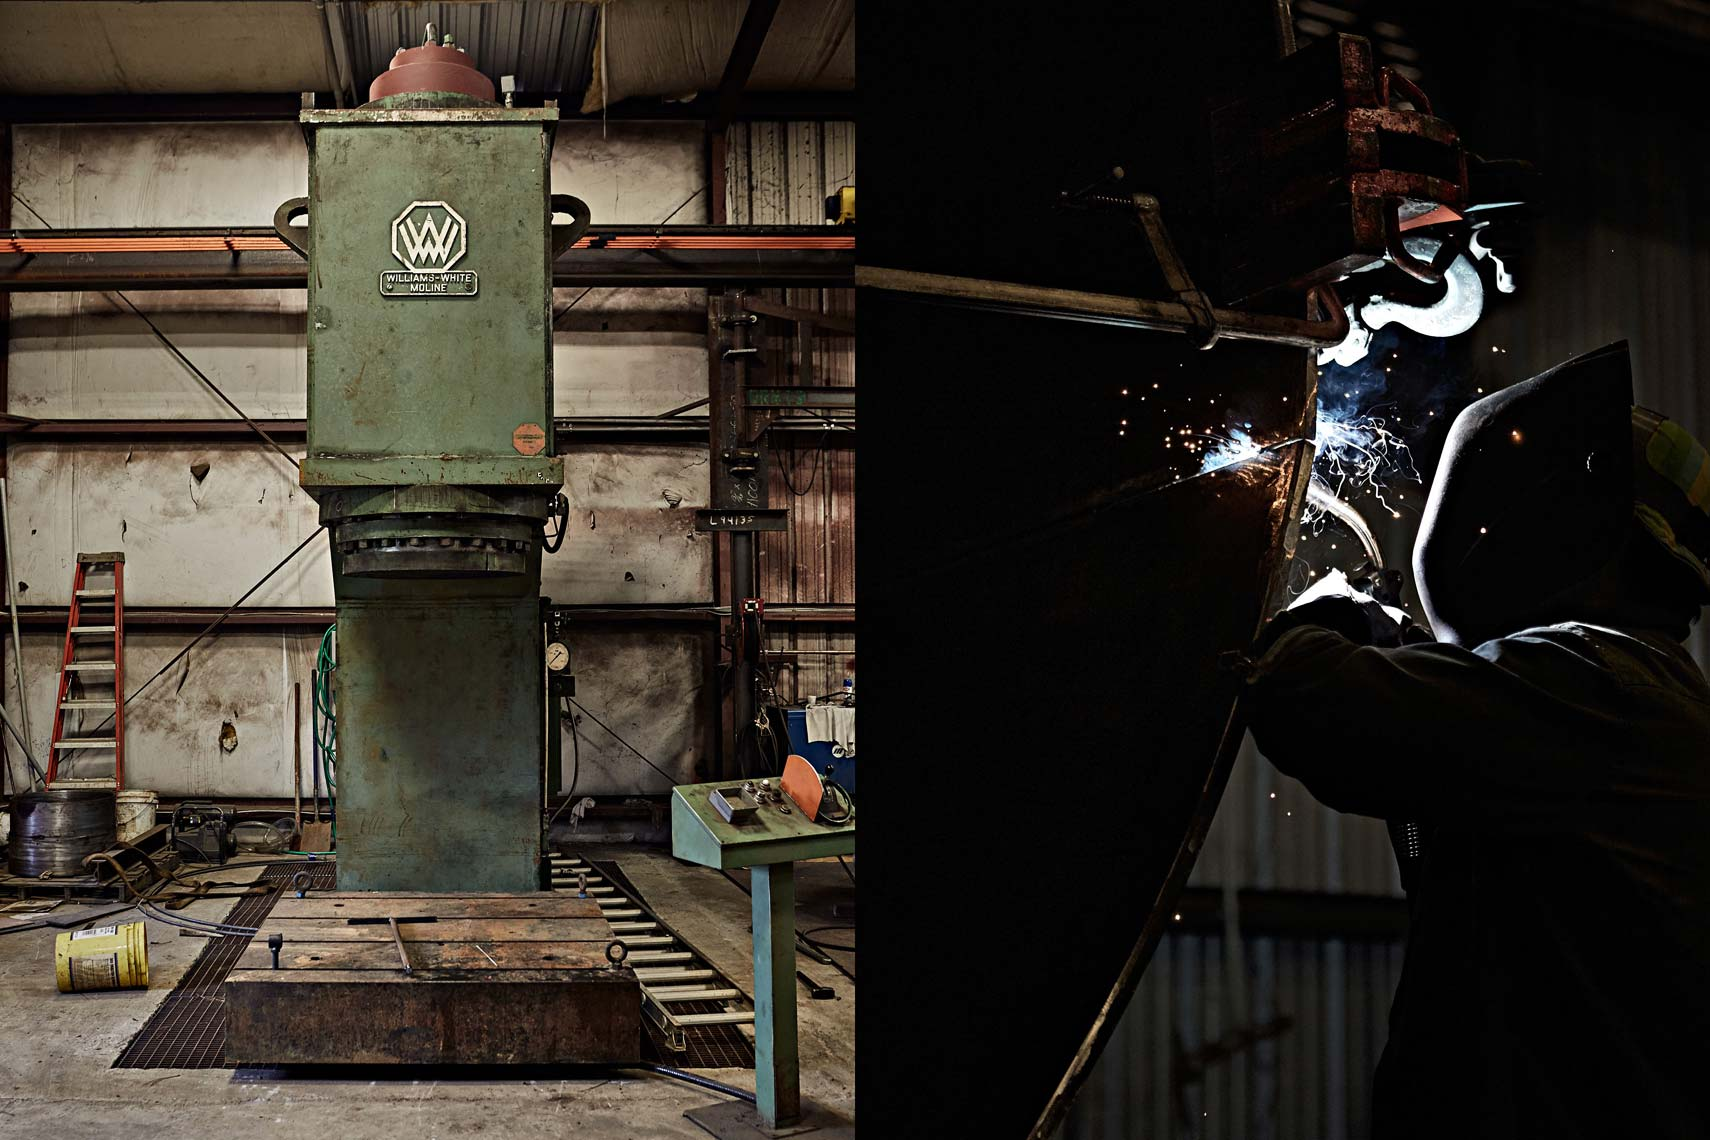 Stamp machine and welding in factory. Atlanta industrial photography